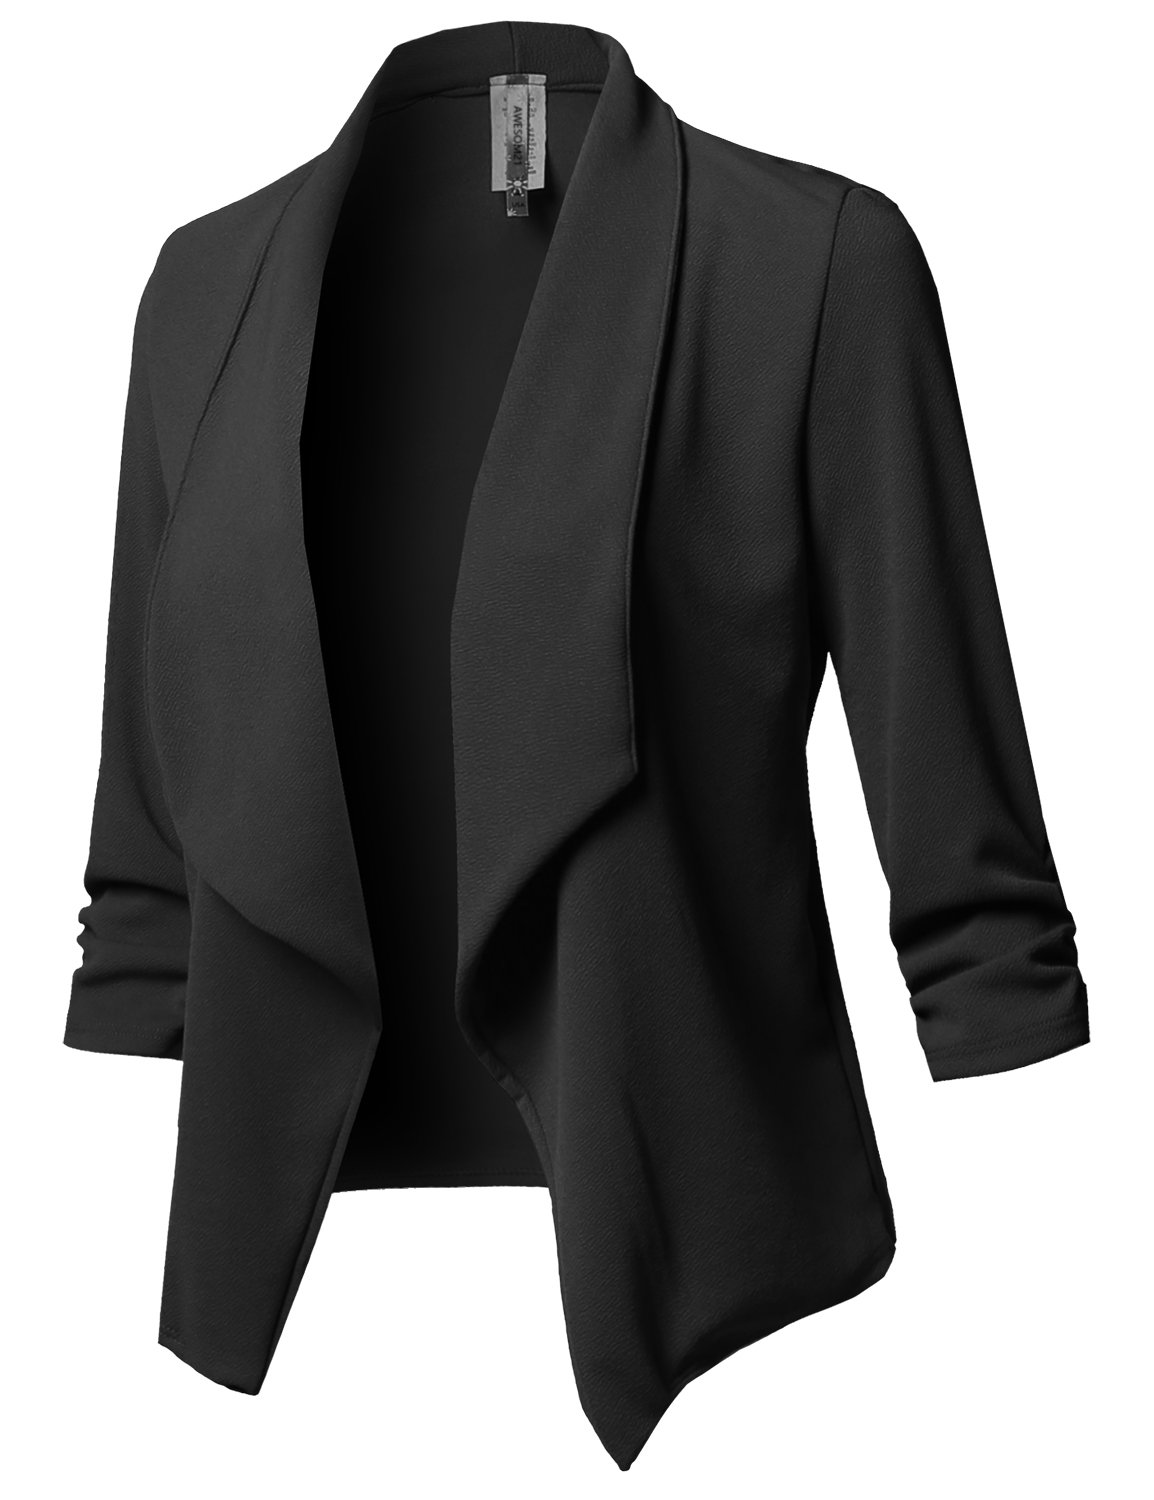 Awesome21 Solid Stretch 3/4 Gathered Sleeve Open Blazer Jacket Black Size L